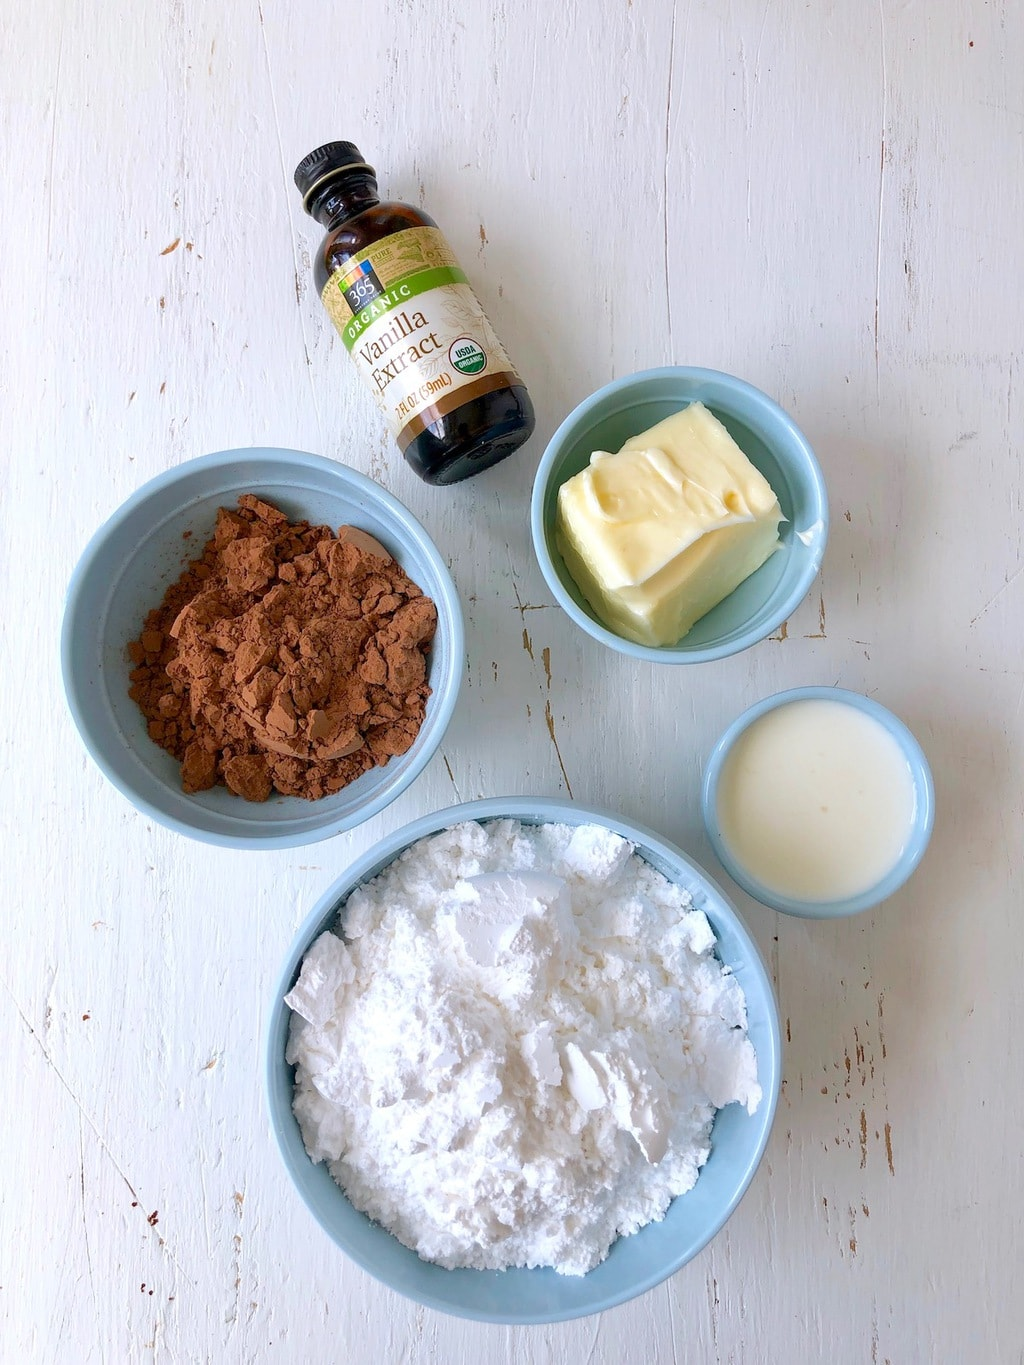 Cocoa powder, vanilla, butter, milk, and confectioner's sugar